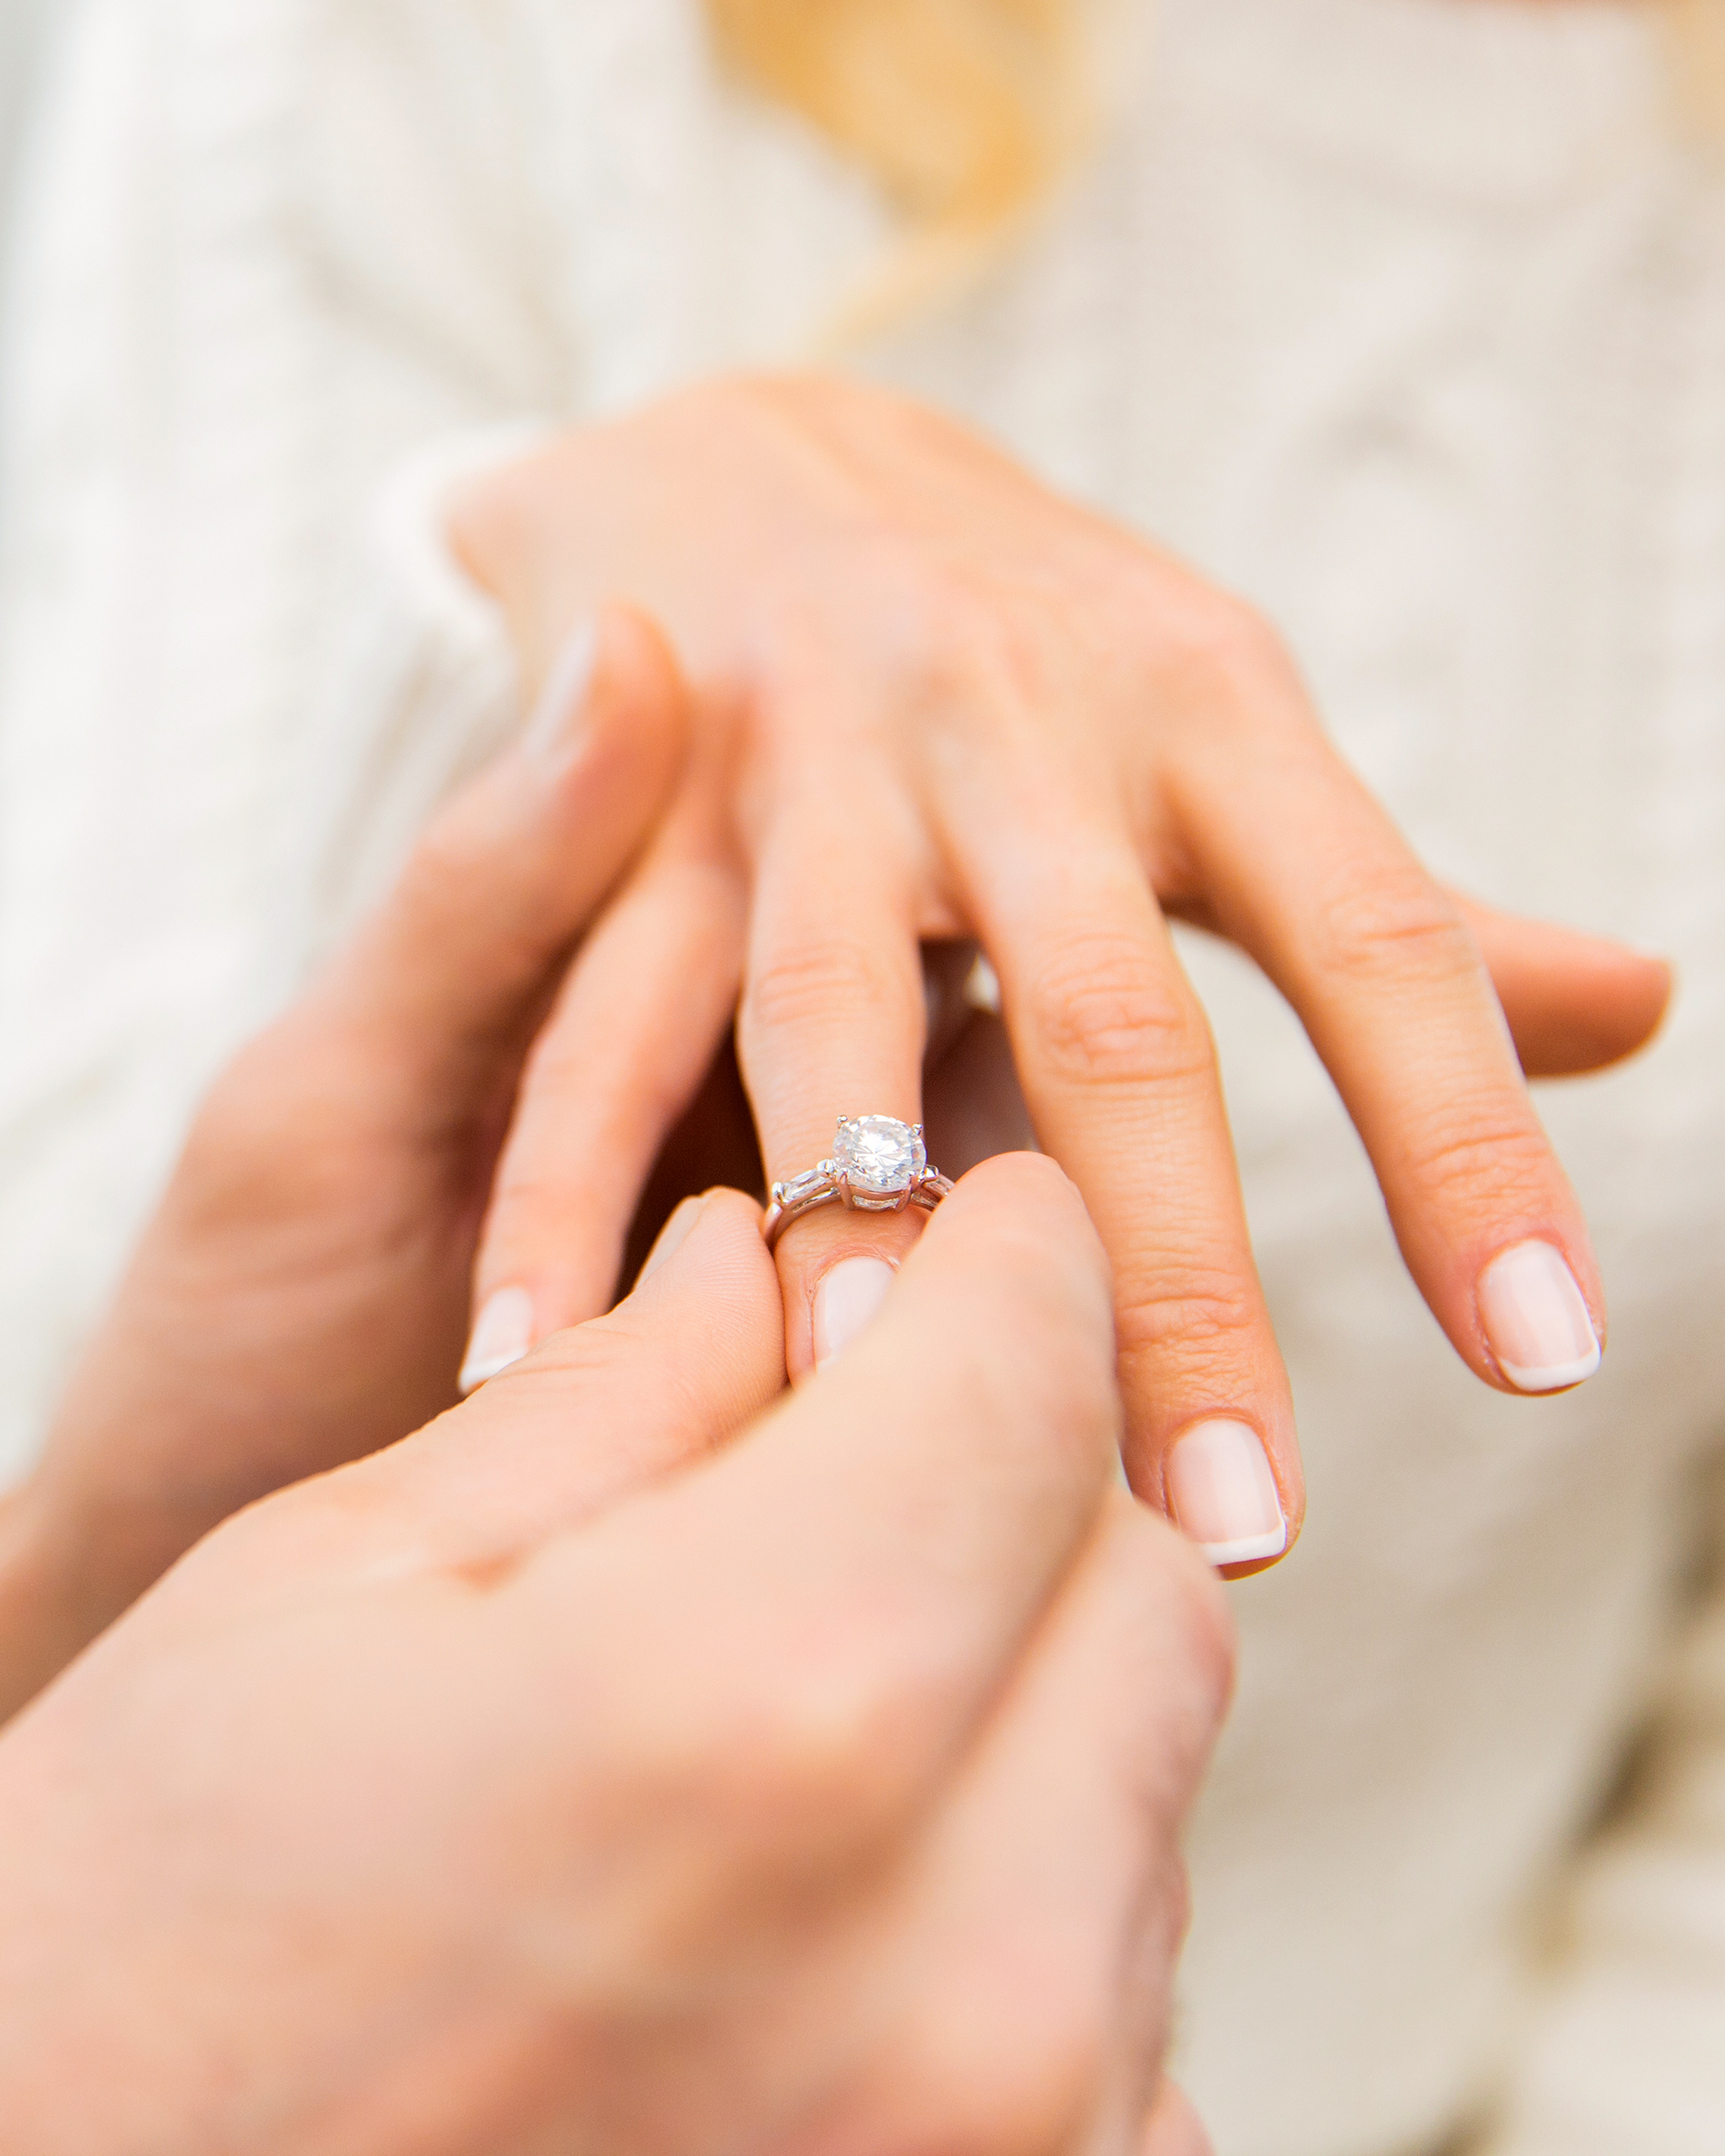 8 Concerns That Are Totally Normal to Have After Getting Engaged